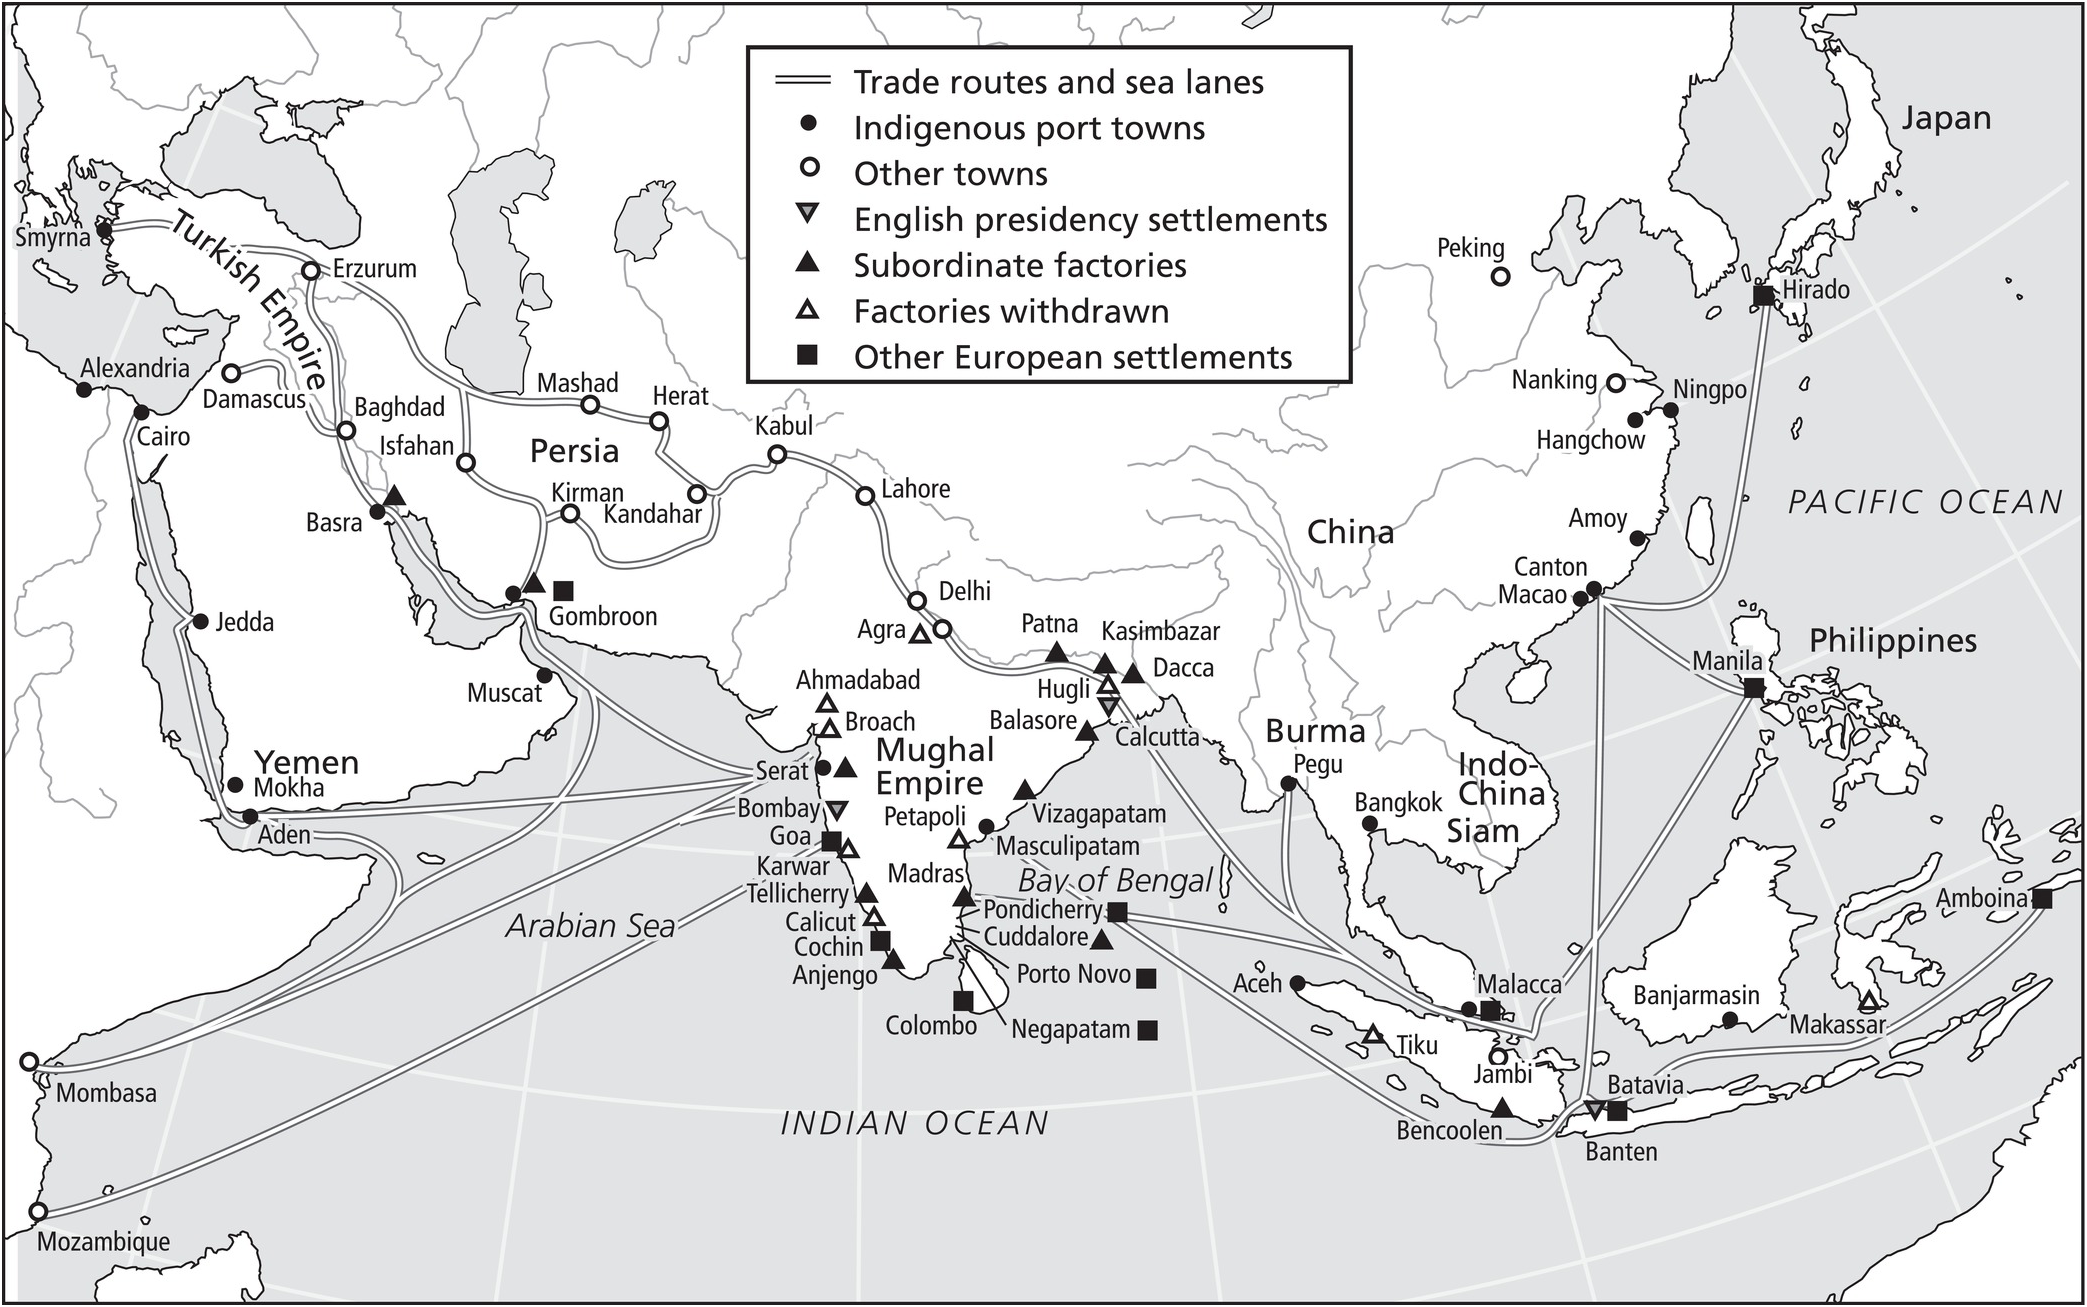 Dutch and English trade to the East: the Indian Ocean and